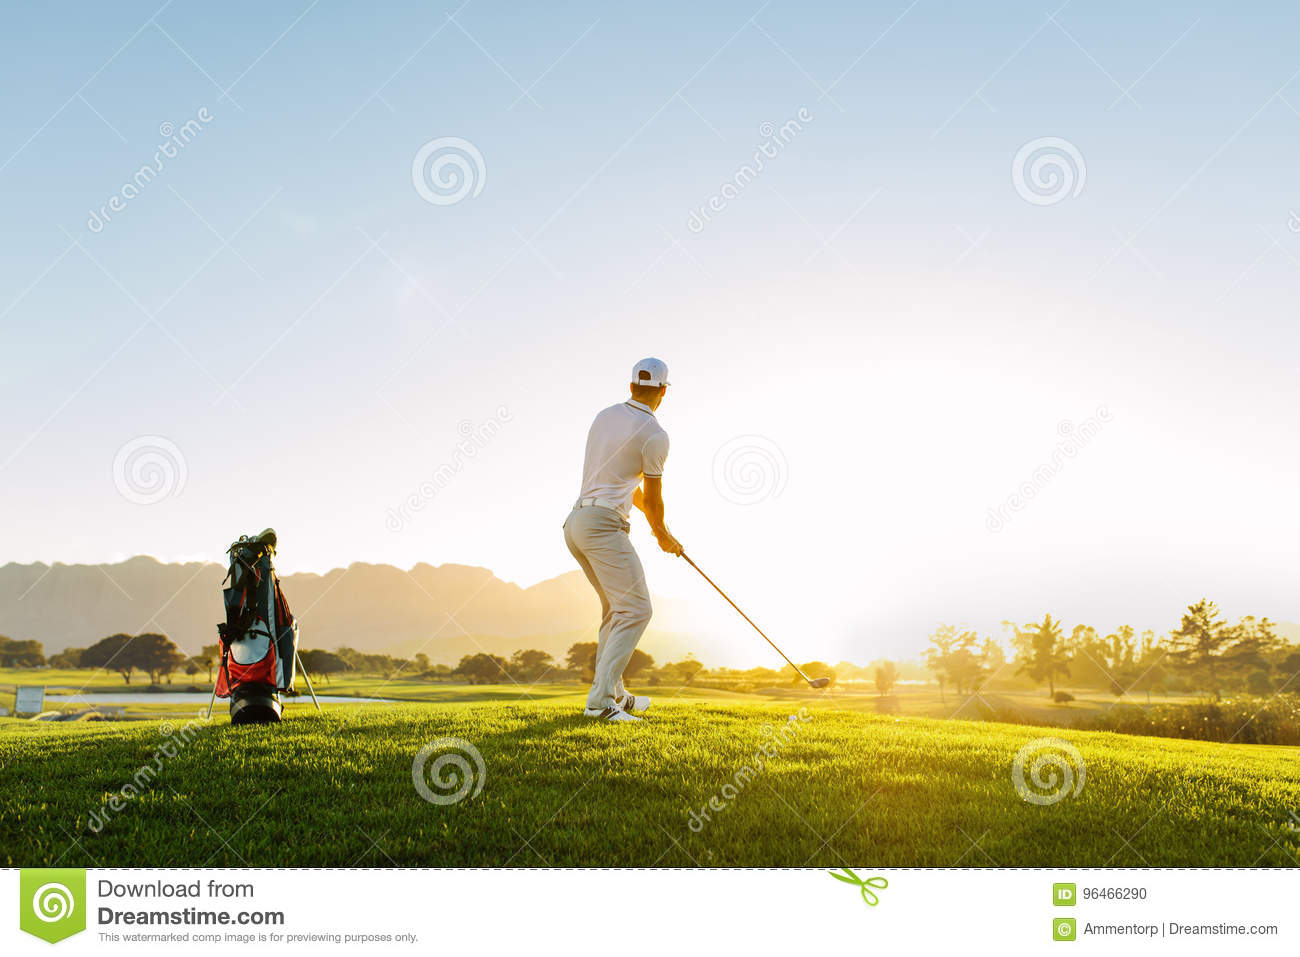 Professional male golfer taking shot on golf course